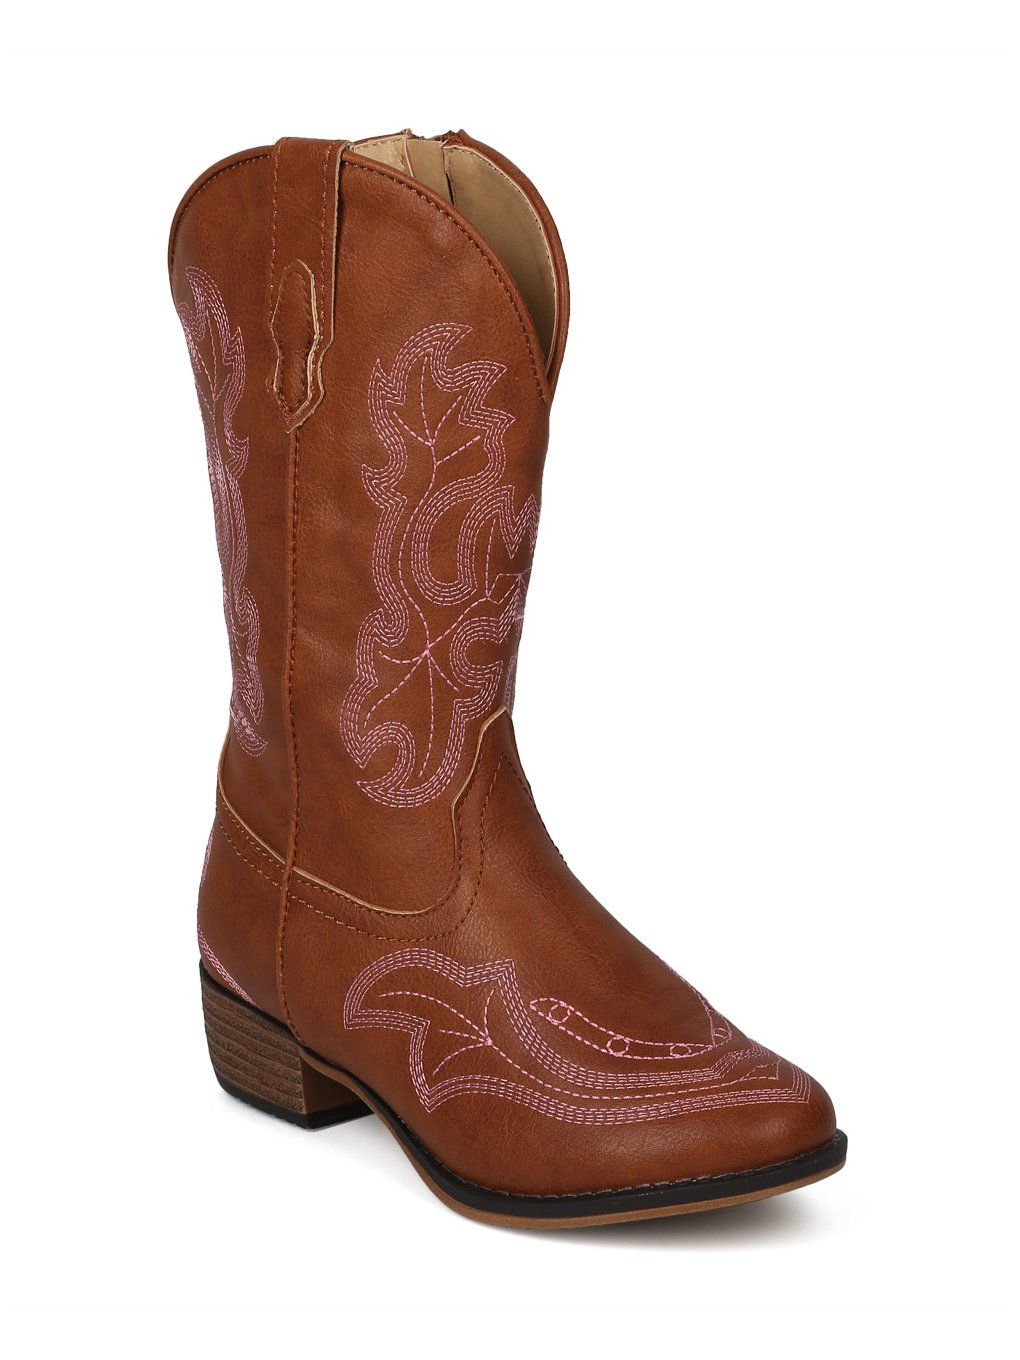 Alrisco Girls Leatherette Embroidered Tall Cowboy Boot HG02 - Tan Leatherette (Size: Little Kid 1) by Alrisco (Image #5)